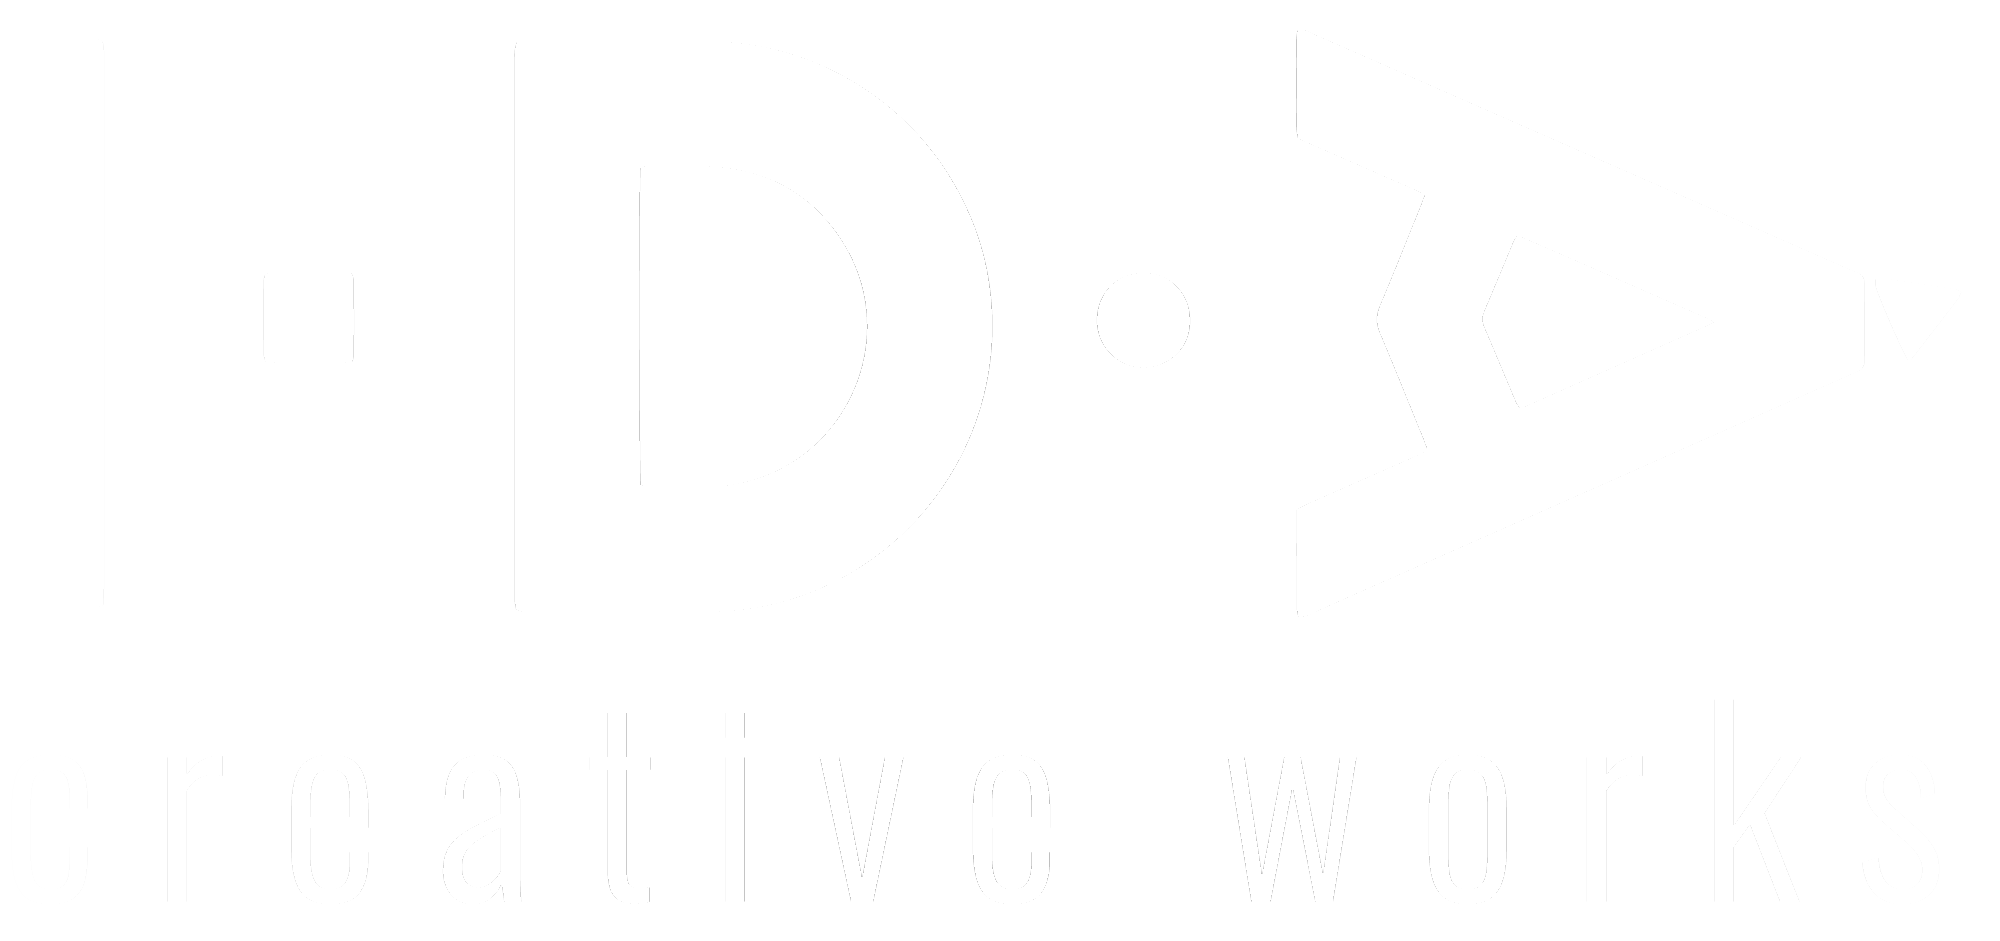 İda Creative Works Logo